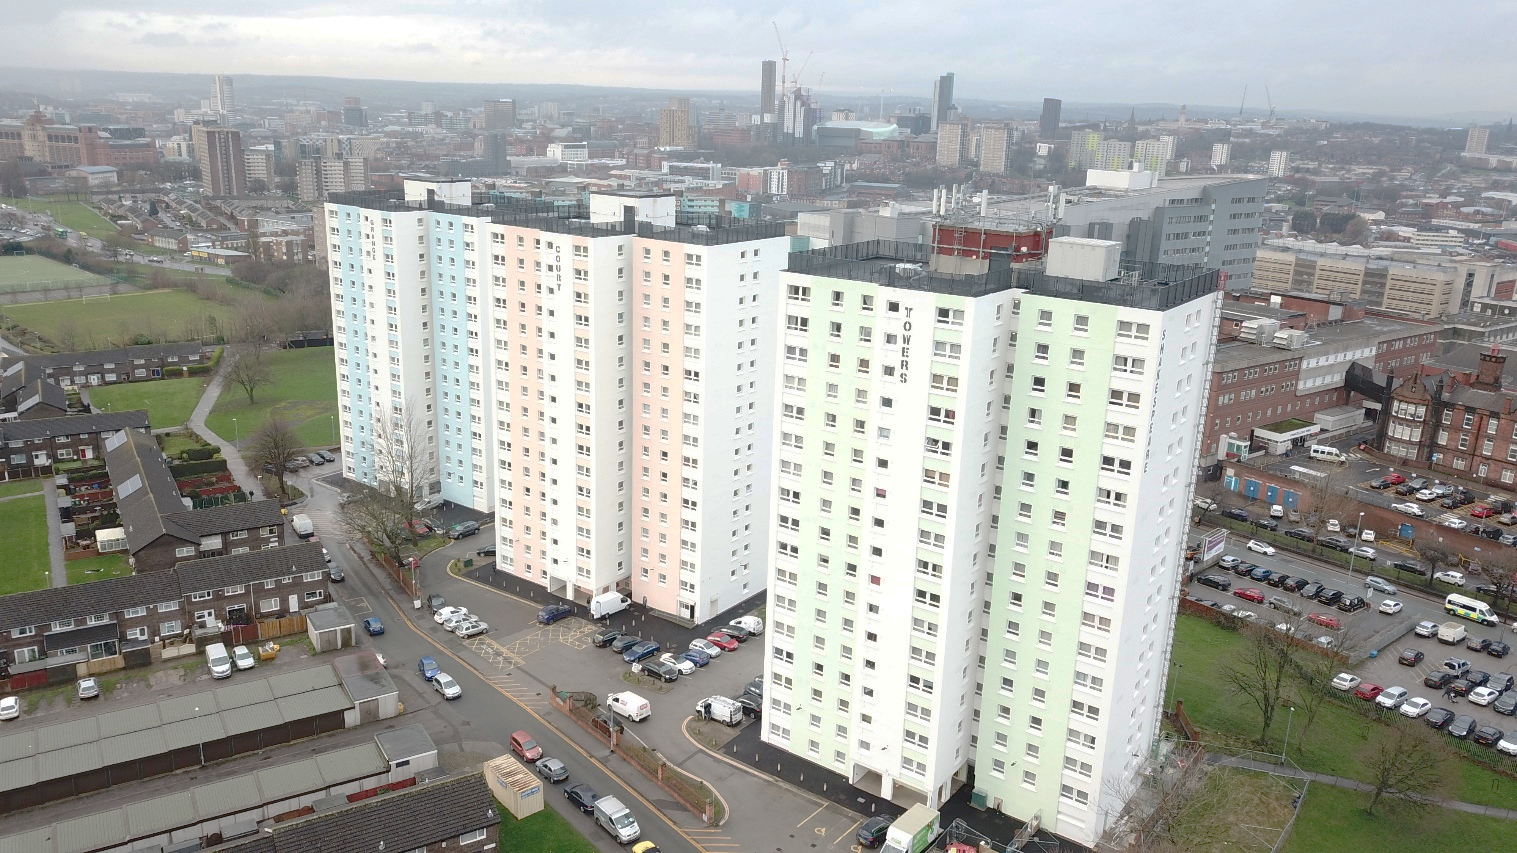 Leeds invests £100m to improve energy efficiency of council housing